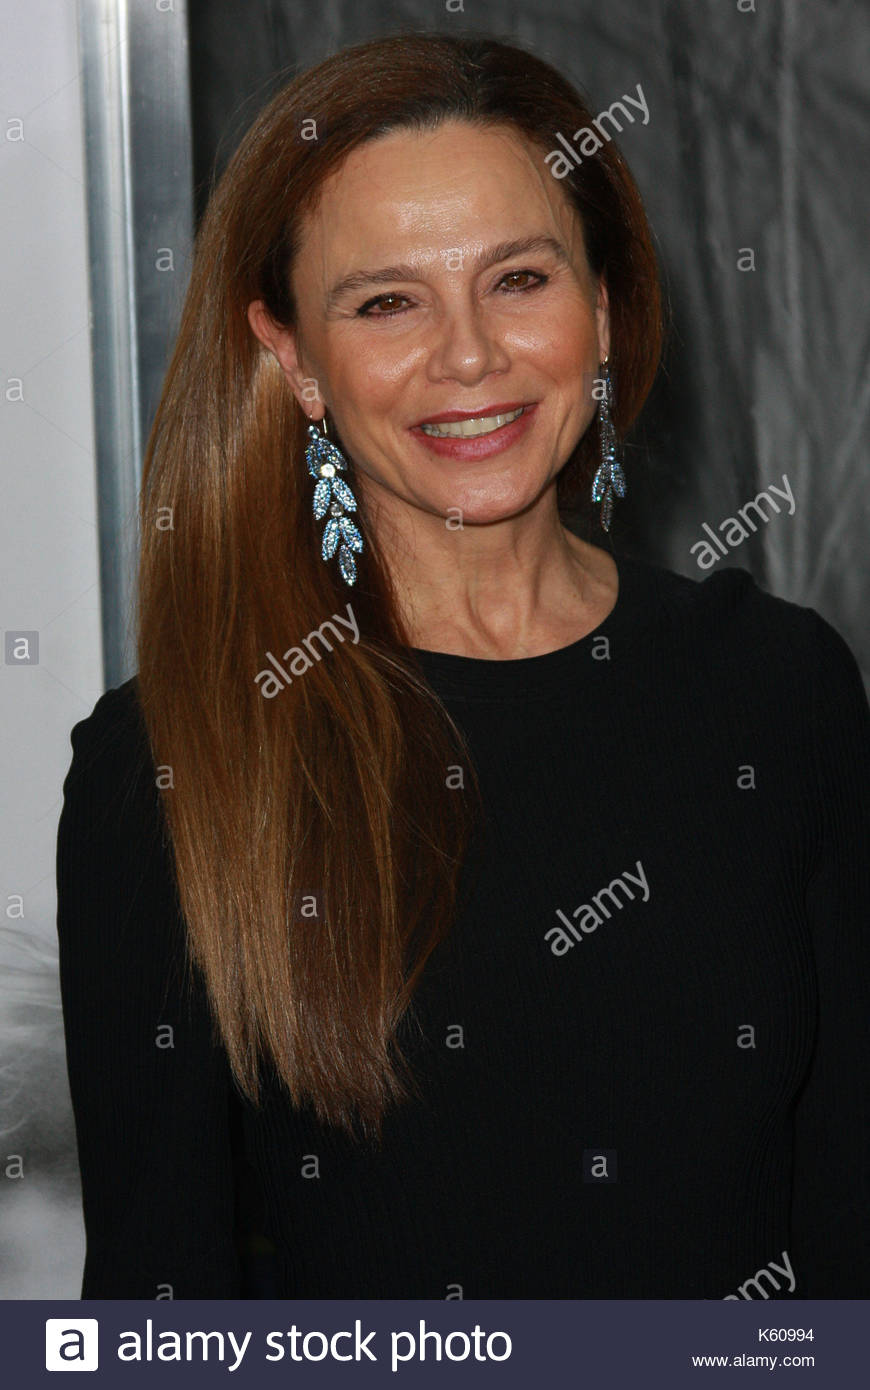 Celebrites Lena Olin nude (96 foto and video), Pussy, Bikini, Instagram, butt 2017